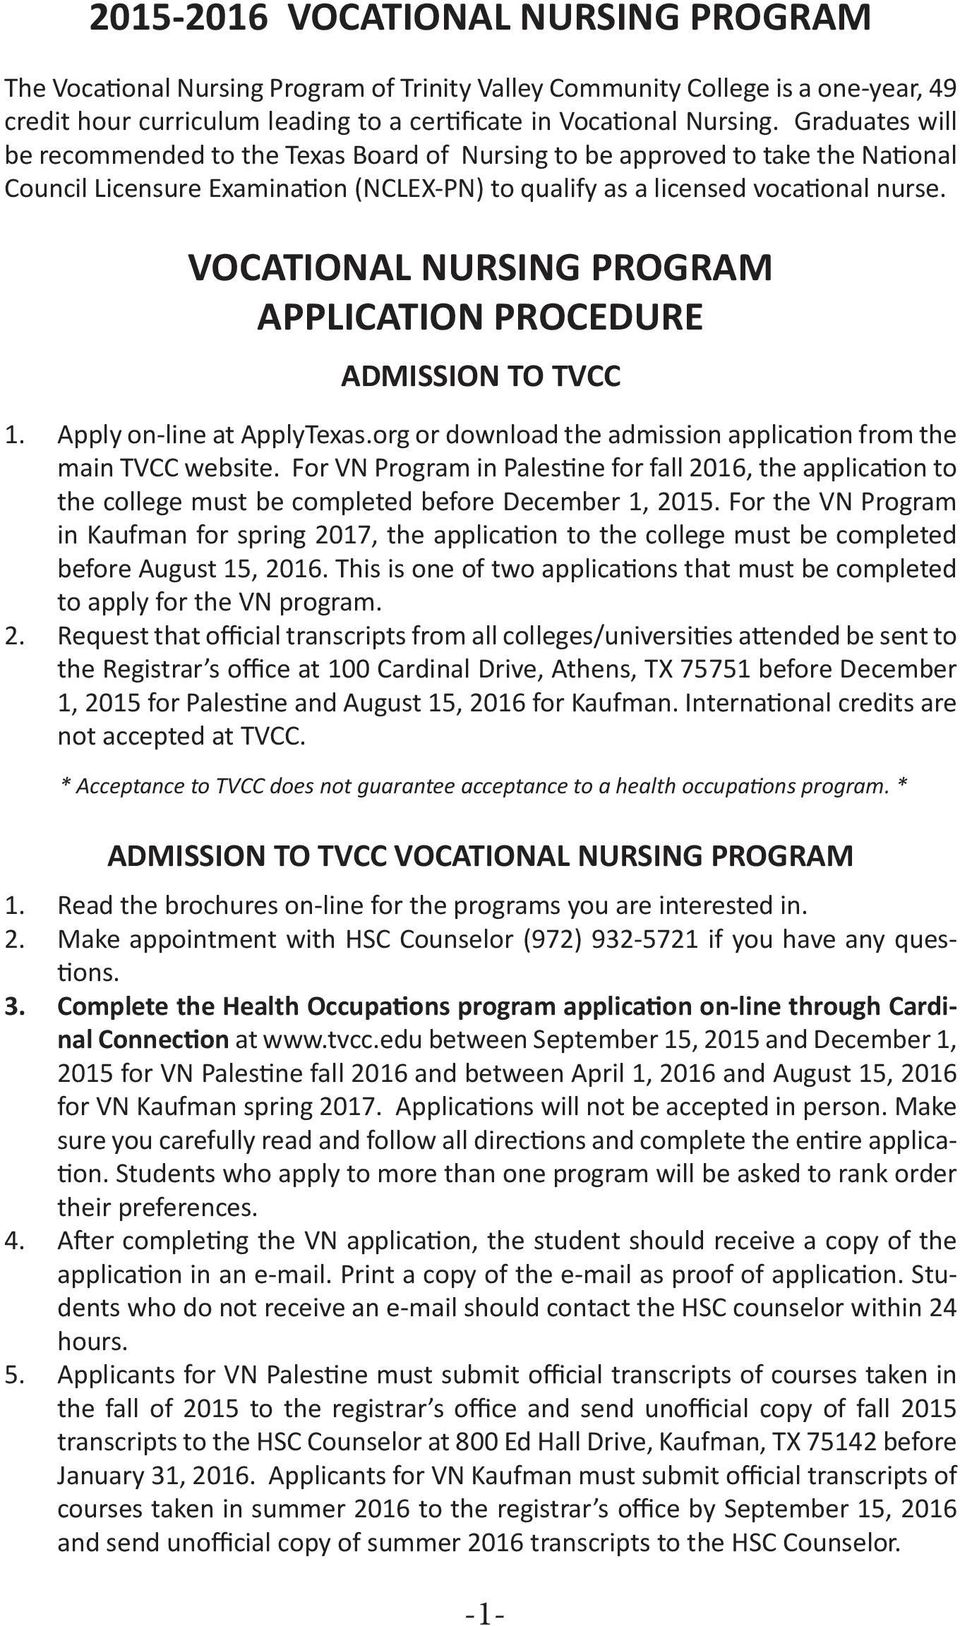 VOCATIONAL NURSING PROGRAM APPLICATION PROCEDURE ADMISSION TO TVCC 1. Apply on-line at ApplyTexas.org or download the admission application from the main TVCC website.